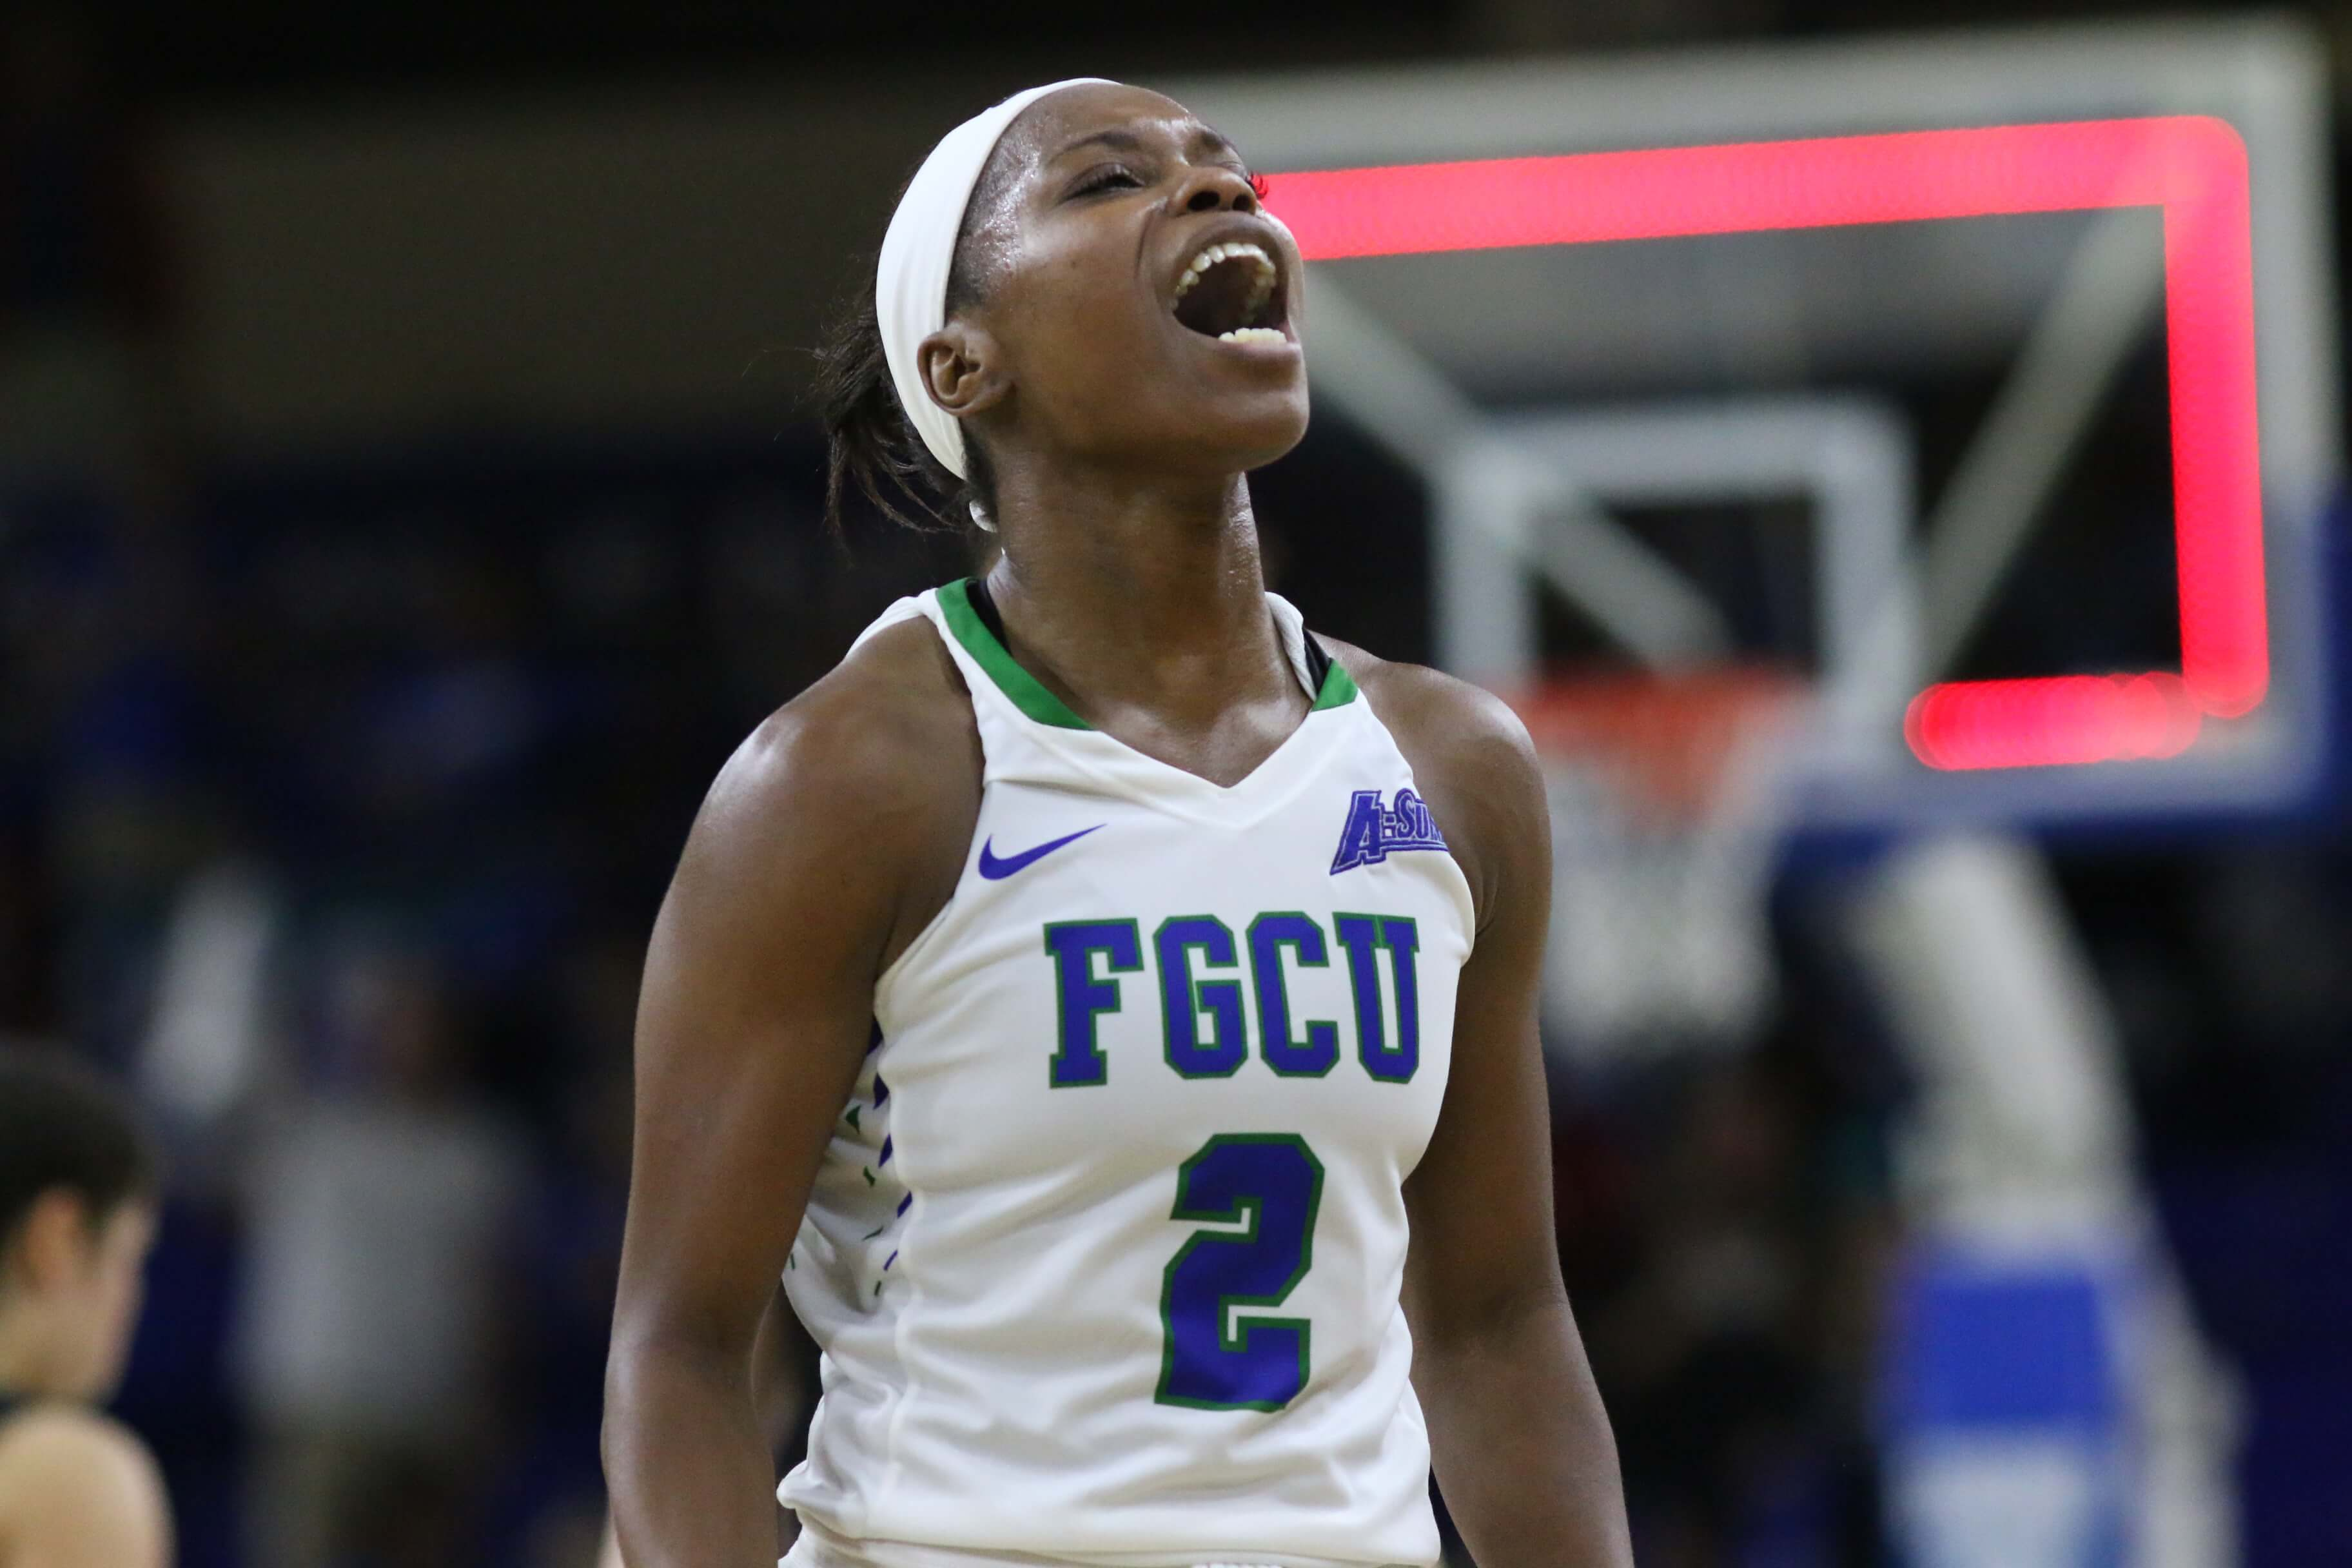 FGCU women's hoops edges Stetson for spot in conference final